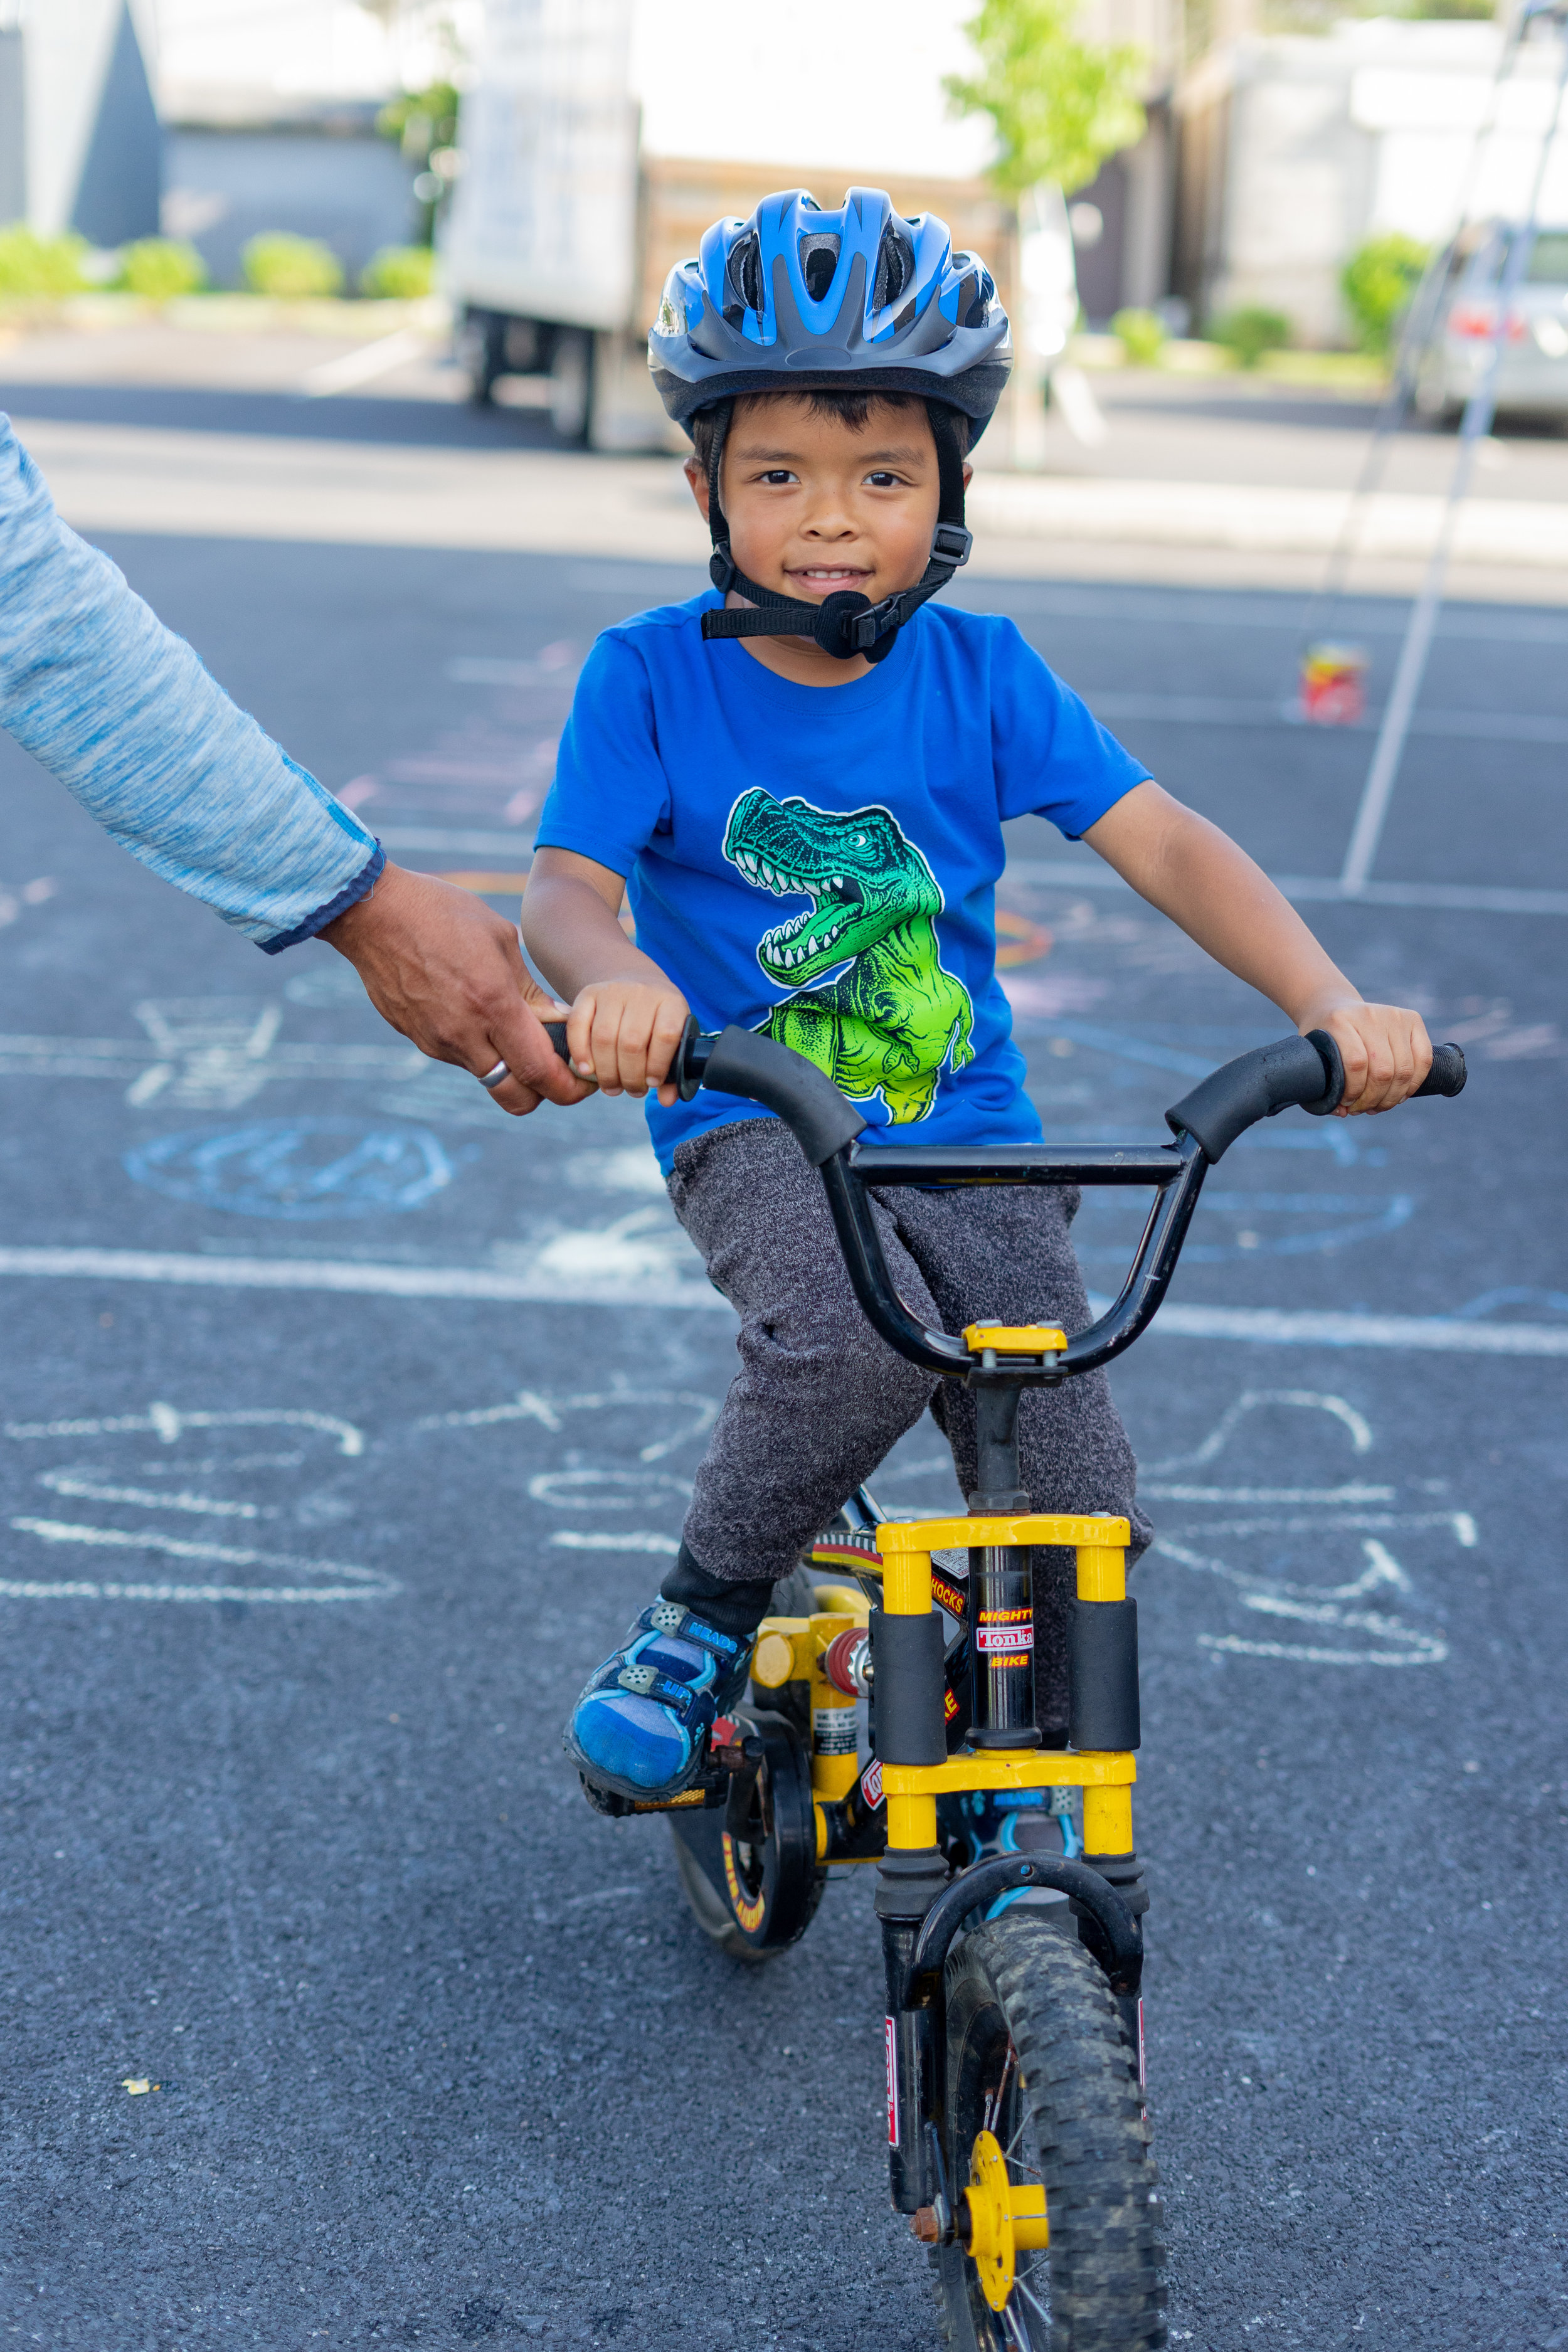 Noah G. poses with the bike he won in the Back-to-School fair raffle. Noah can't ride without training wheels yet, but is excited to learn.